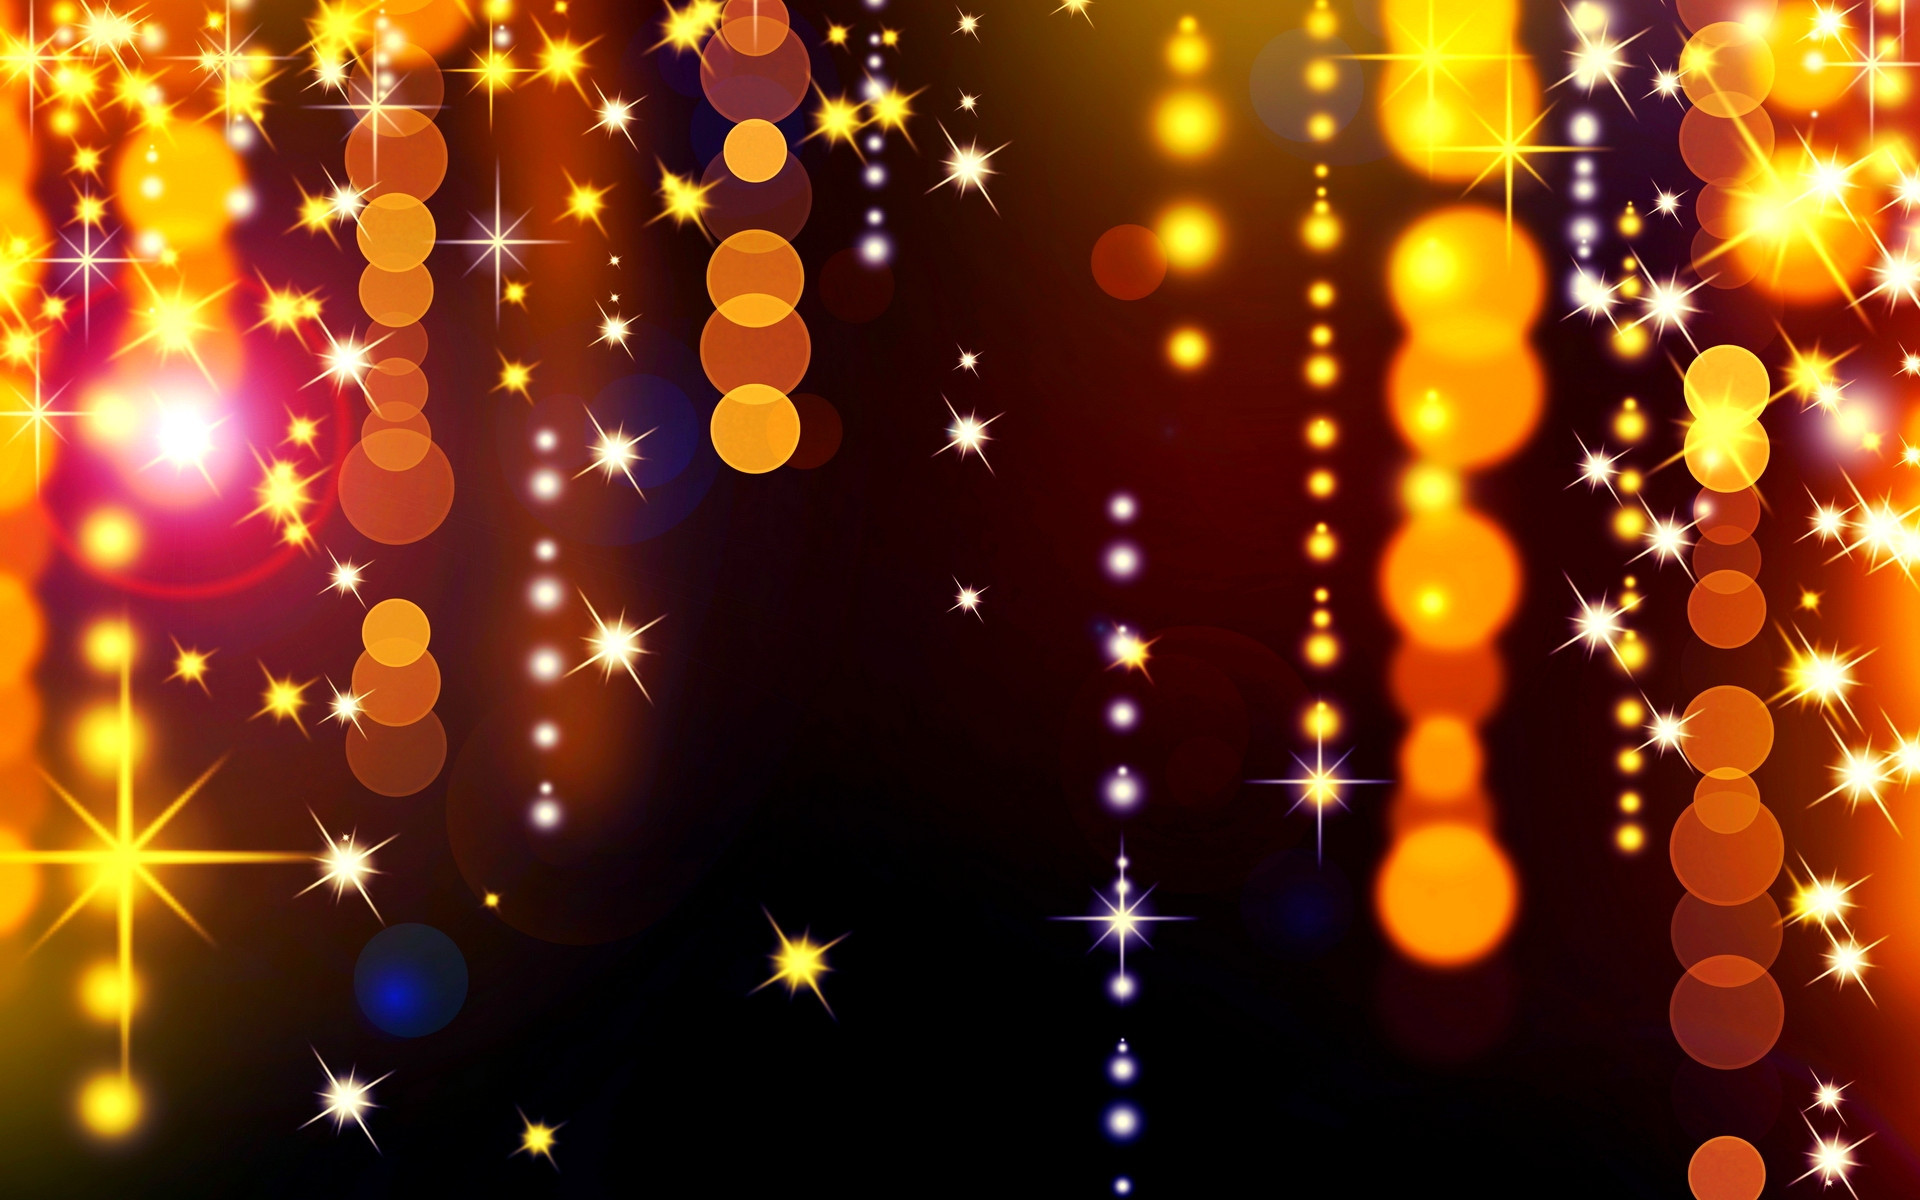 Christmas Lights Wallpapers HD Pictures One HD Wallpaper 1920×1200 Hd wallpapers  christmas lights (